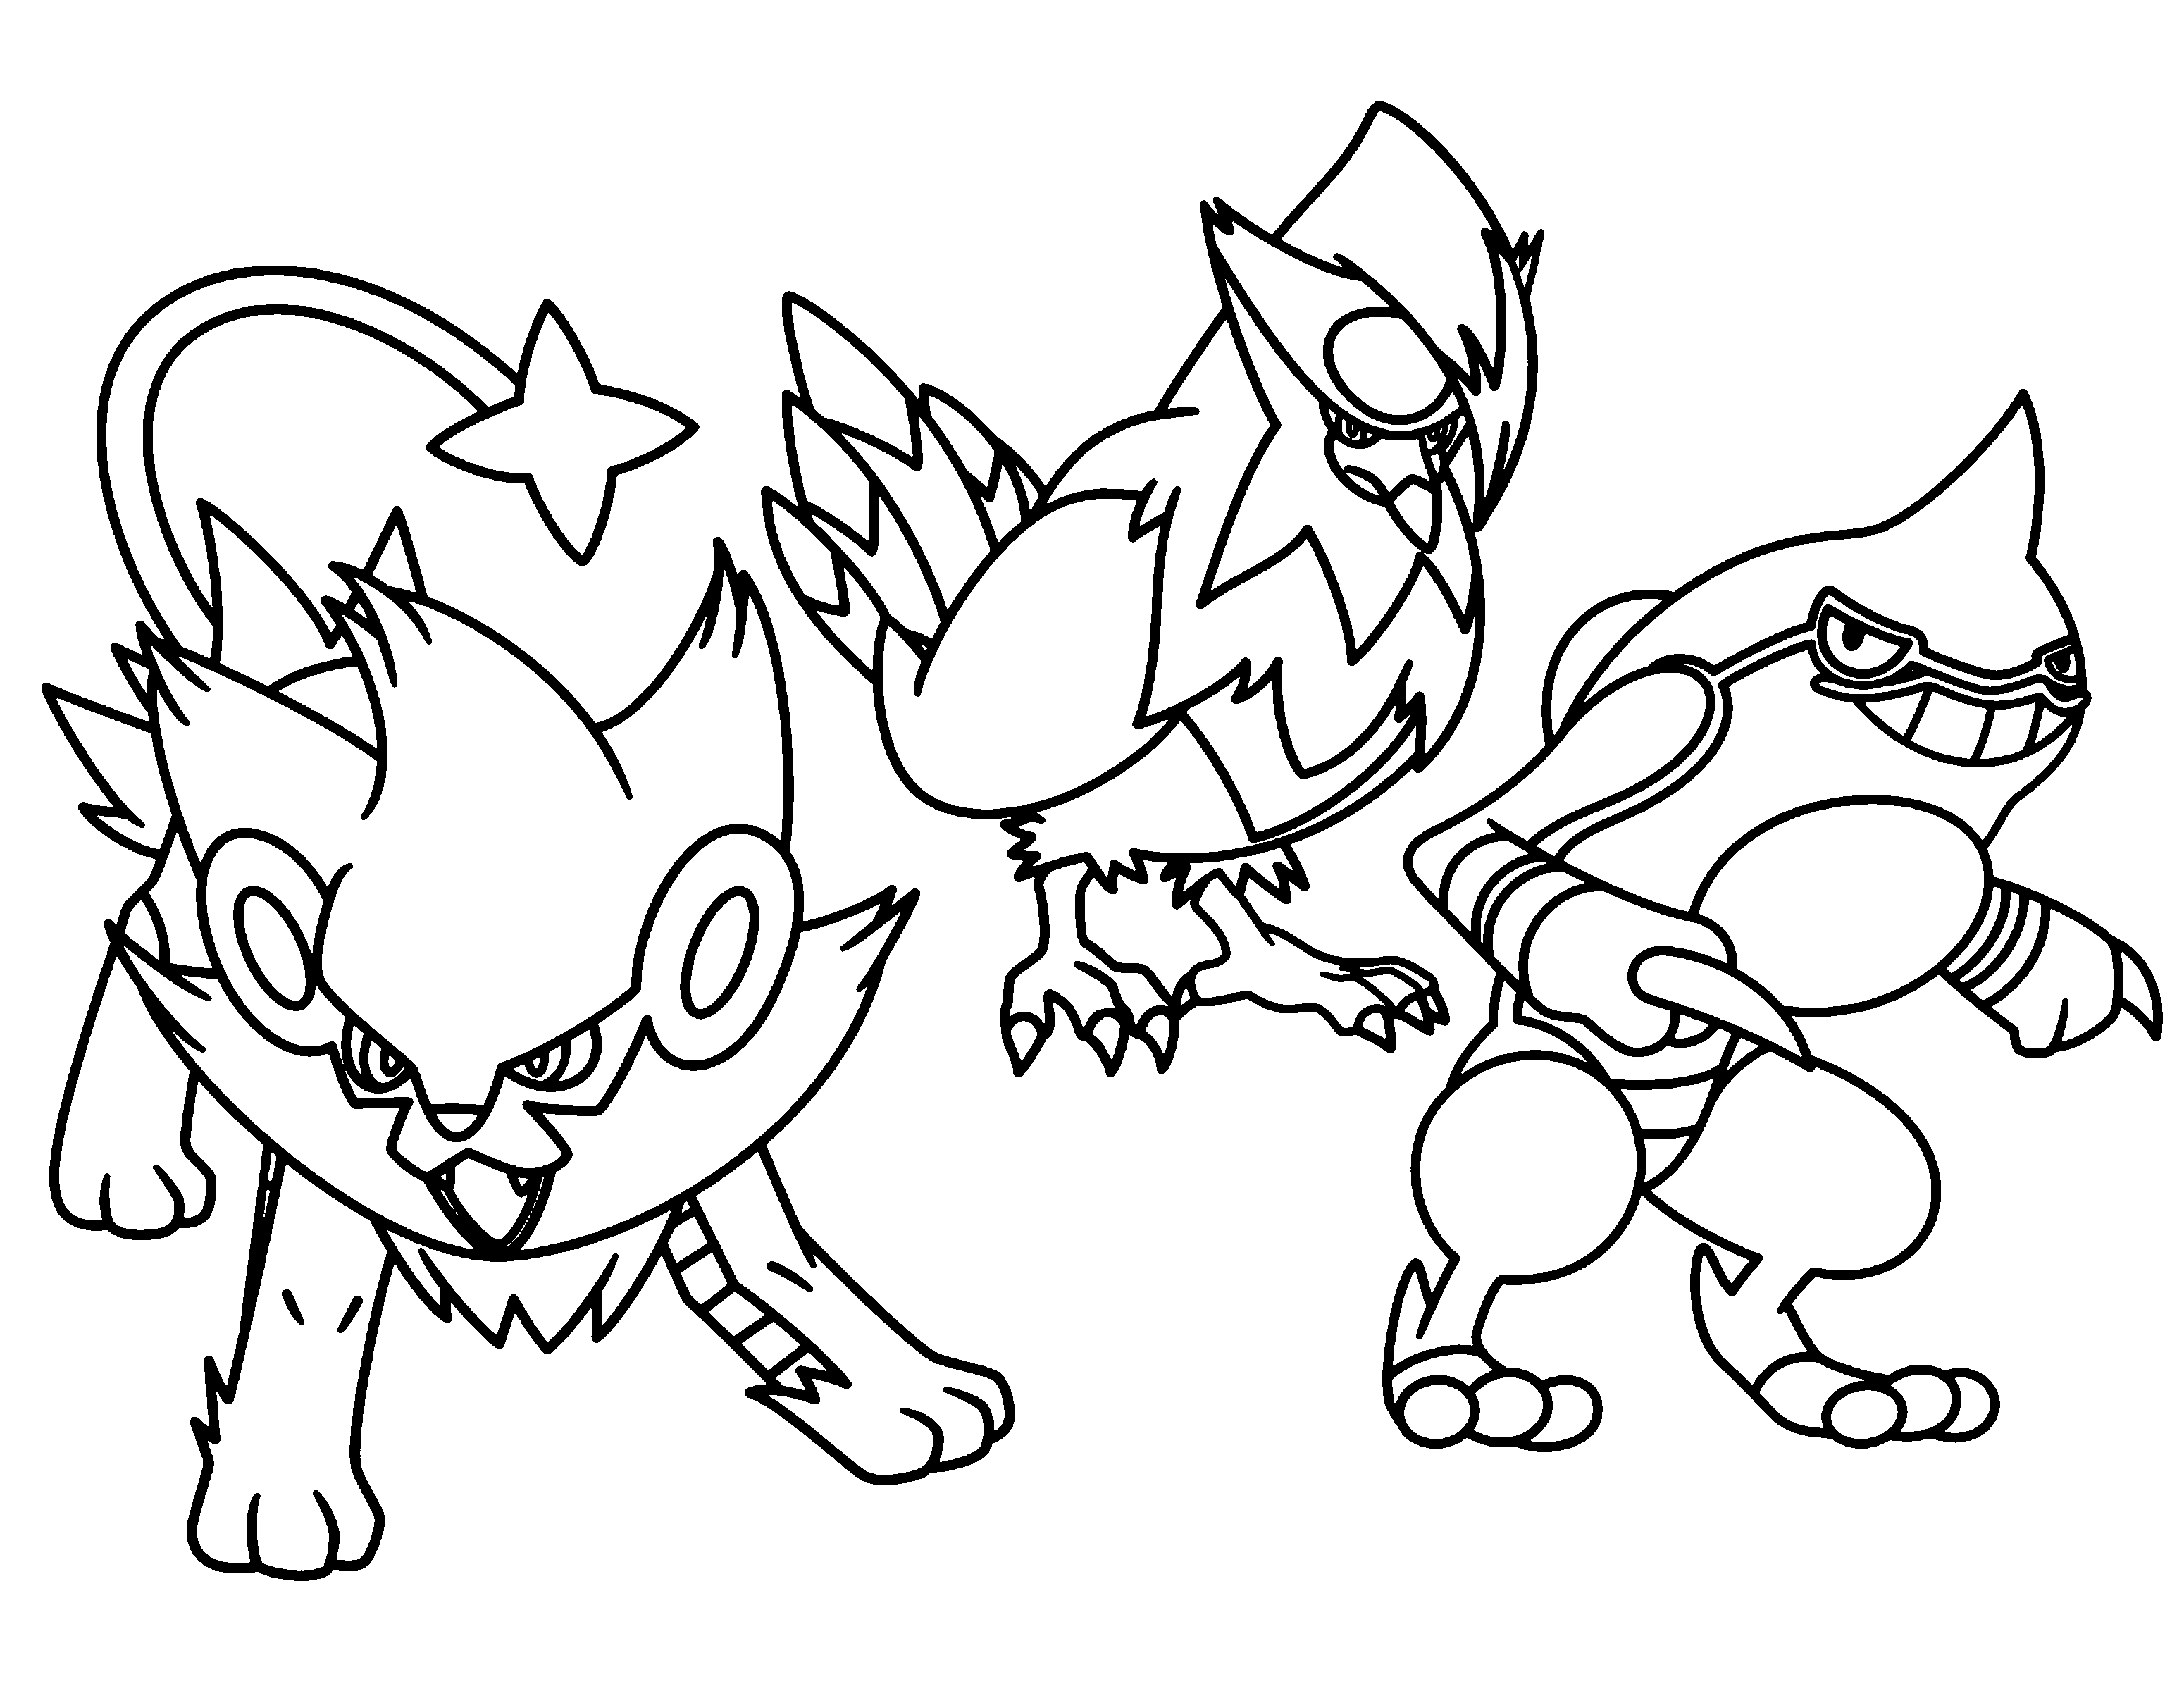 pokemon coloring sheets printable pokemon coloring pages join your favorite pokemon on an sheets printable coloring pokemon